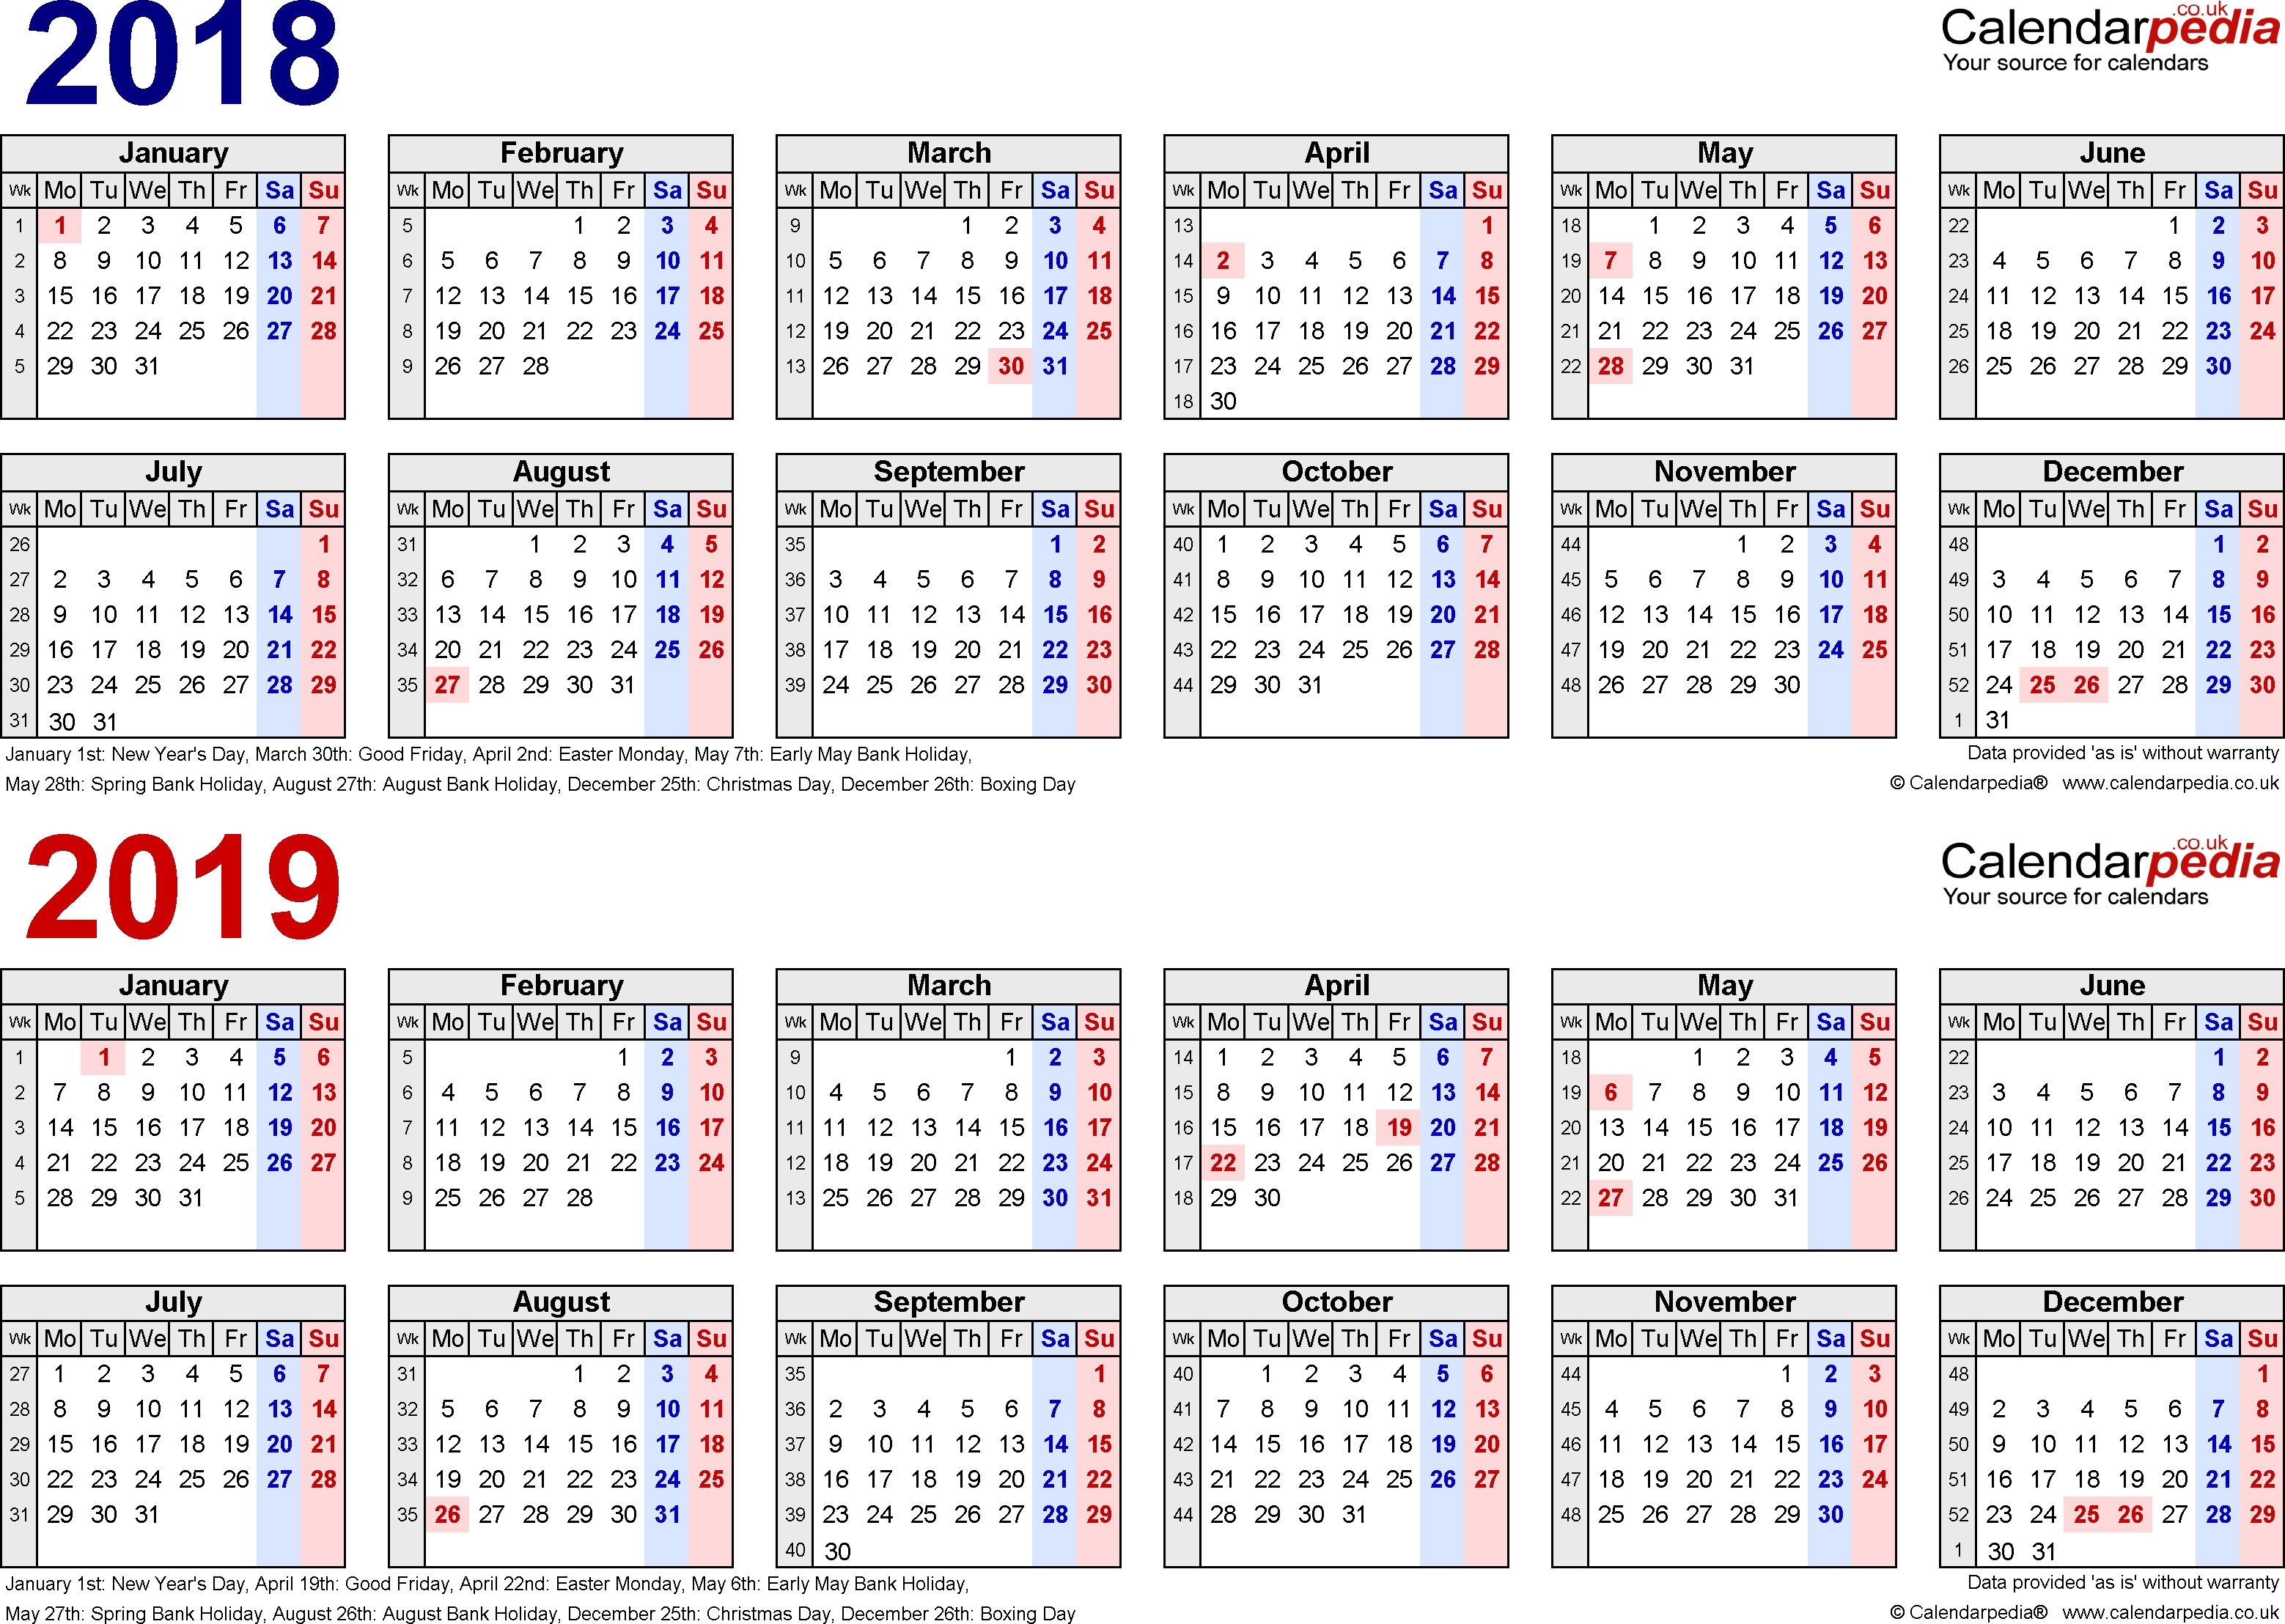 Two Year Calendars For 2018 & 2019 (Uk) For Word inside One Page 2 Years Calendar 2019 2020 With Week Number